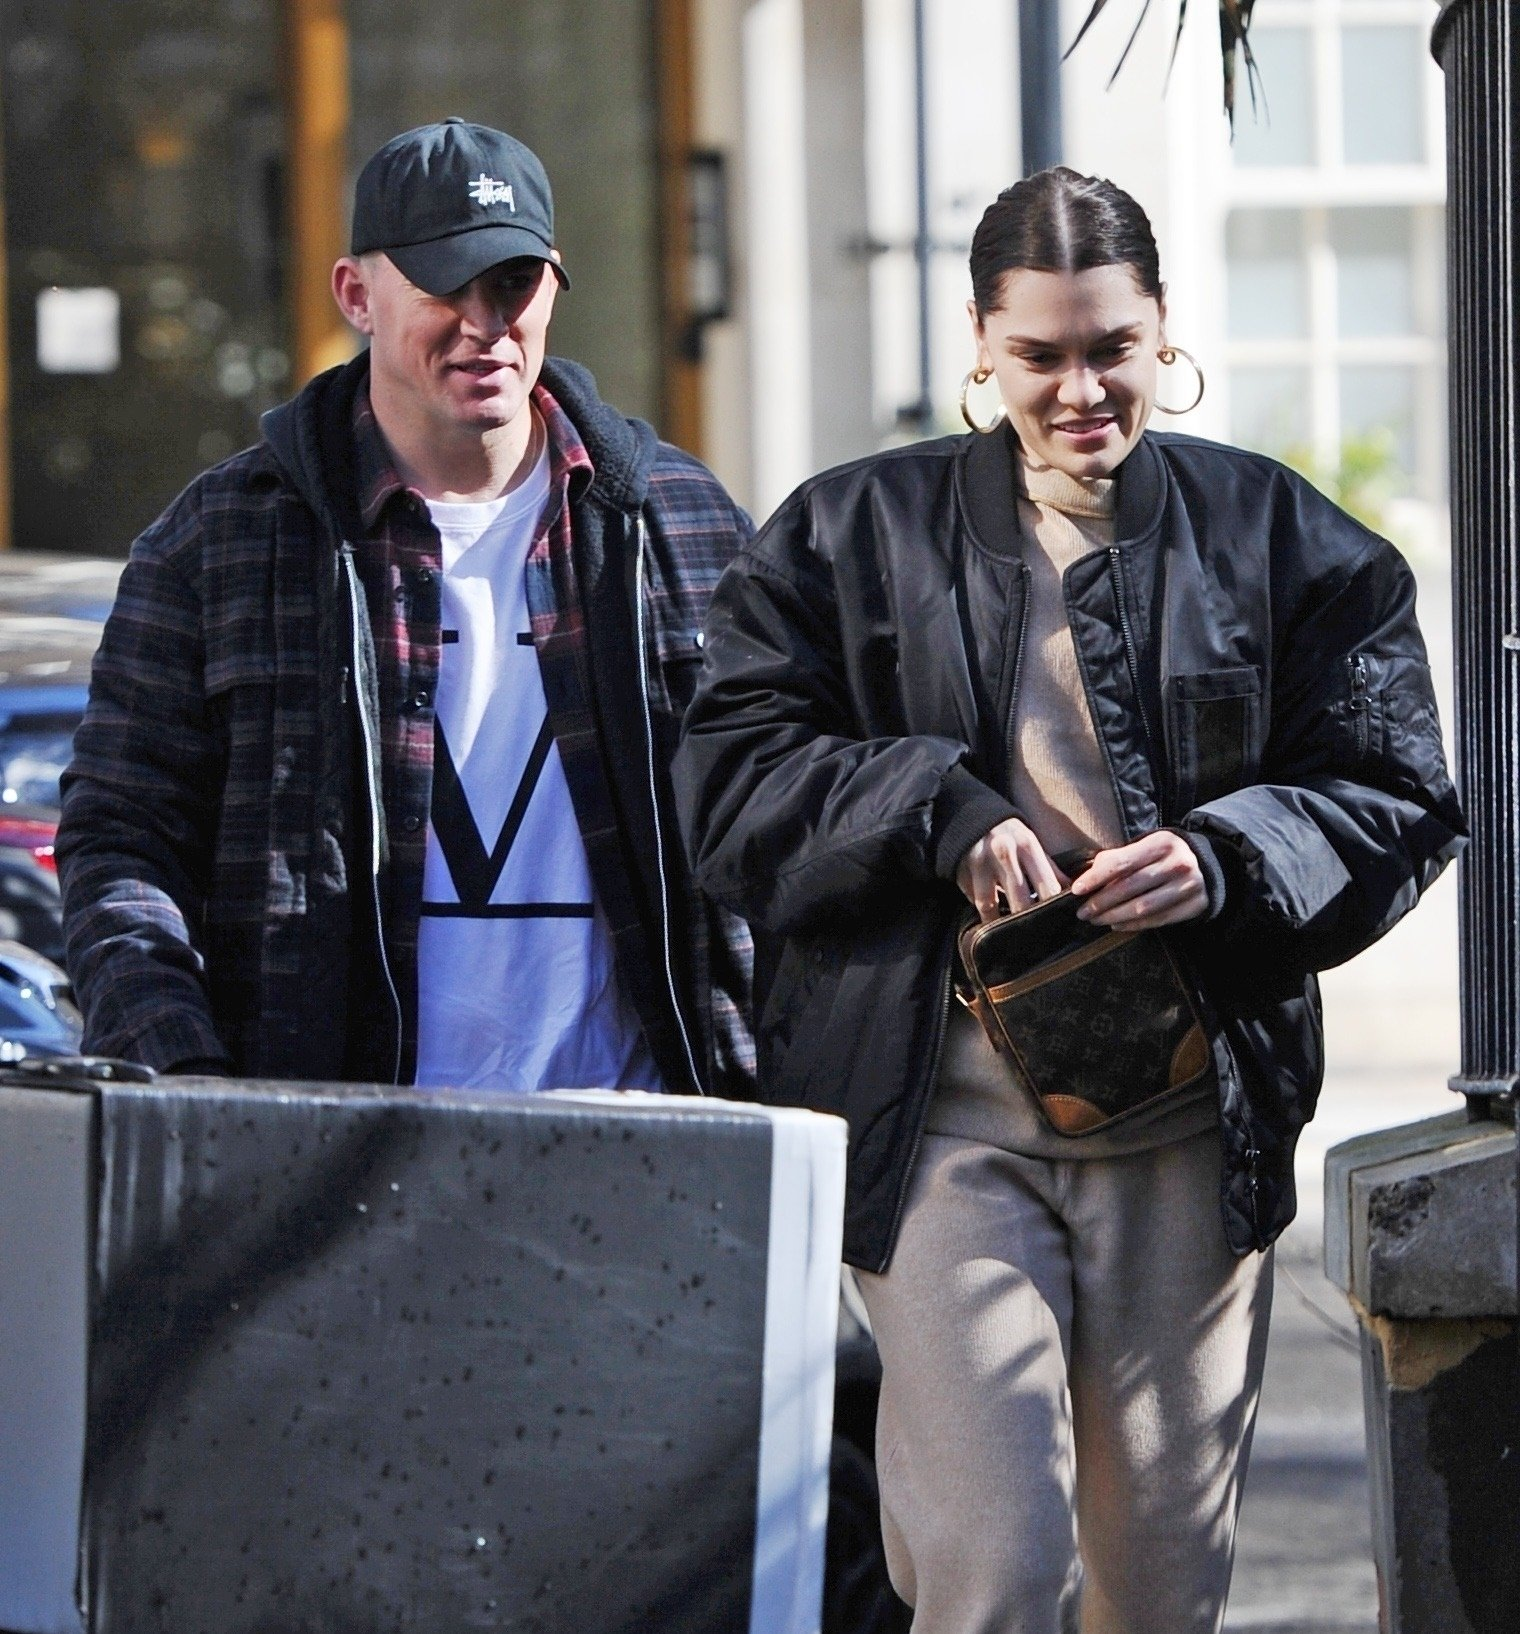 BGUK_1516833 - London, UNITED KINGDOM  - English singer Jessie J and actor boyfriend Channing Tatum pictured out and about holding hands in London. The happy couple looked relaxed as they enjoyed the Spring sunshine in London together!  Pictured: Jessie J, Channing Tatum  BACKGRID UK 14 MARCH 2019, Image: 419396303, License: Rights-managed, Restrictions: , Model Release: no, Credit line: Profimedia, Backgrid UK